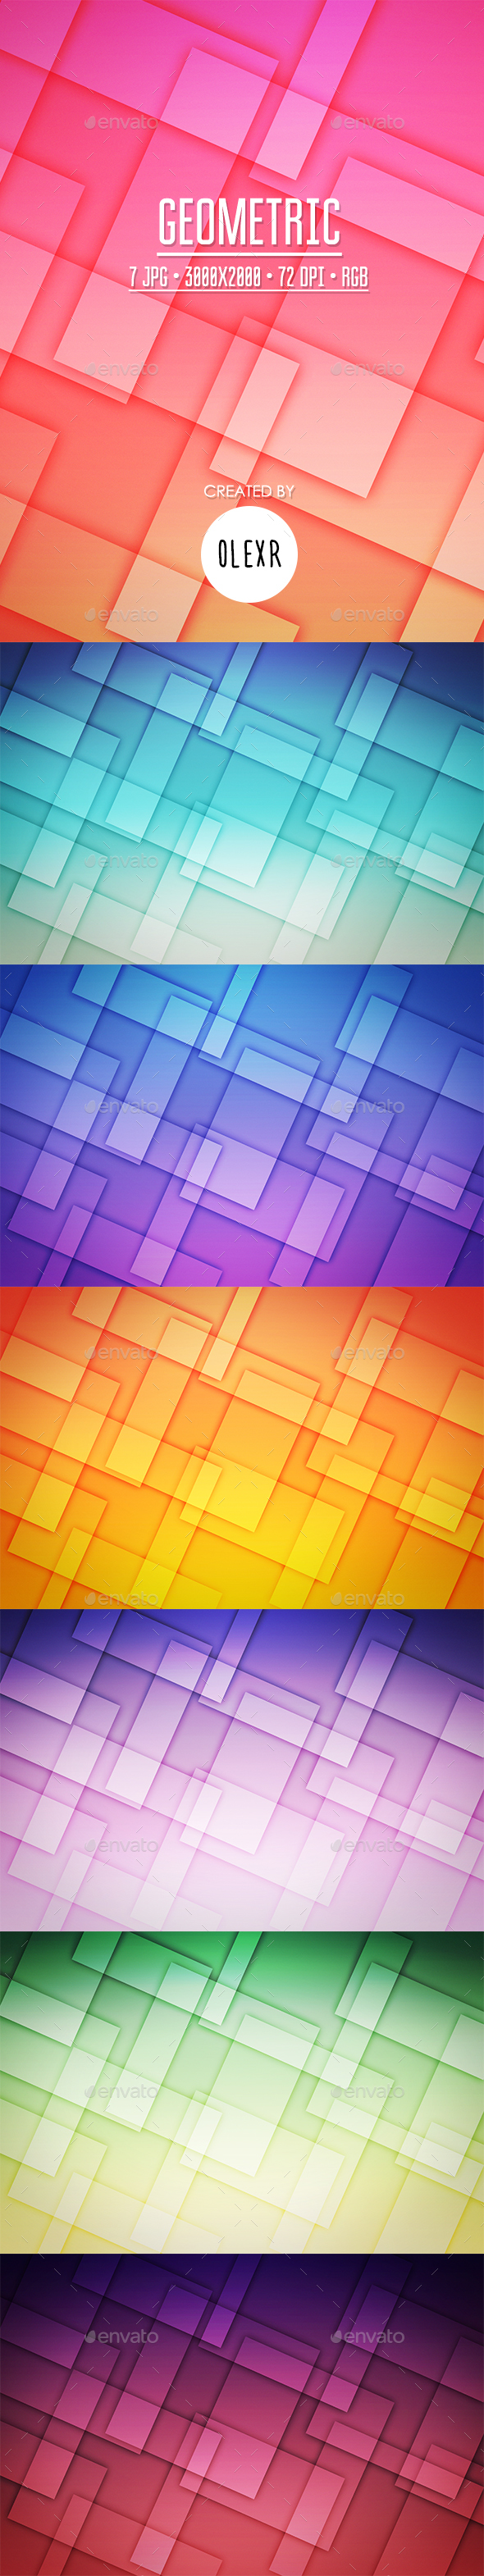 Geometric Backgrounds - Abstract Backgrounds